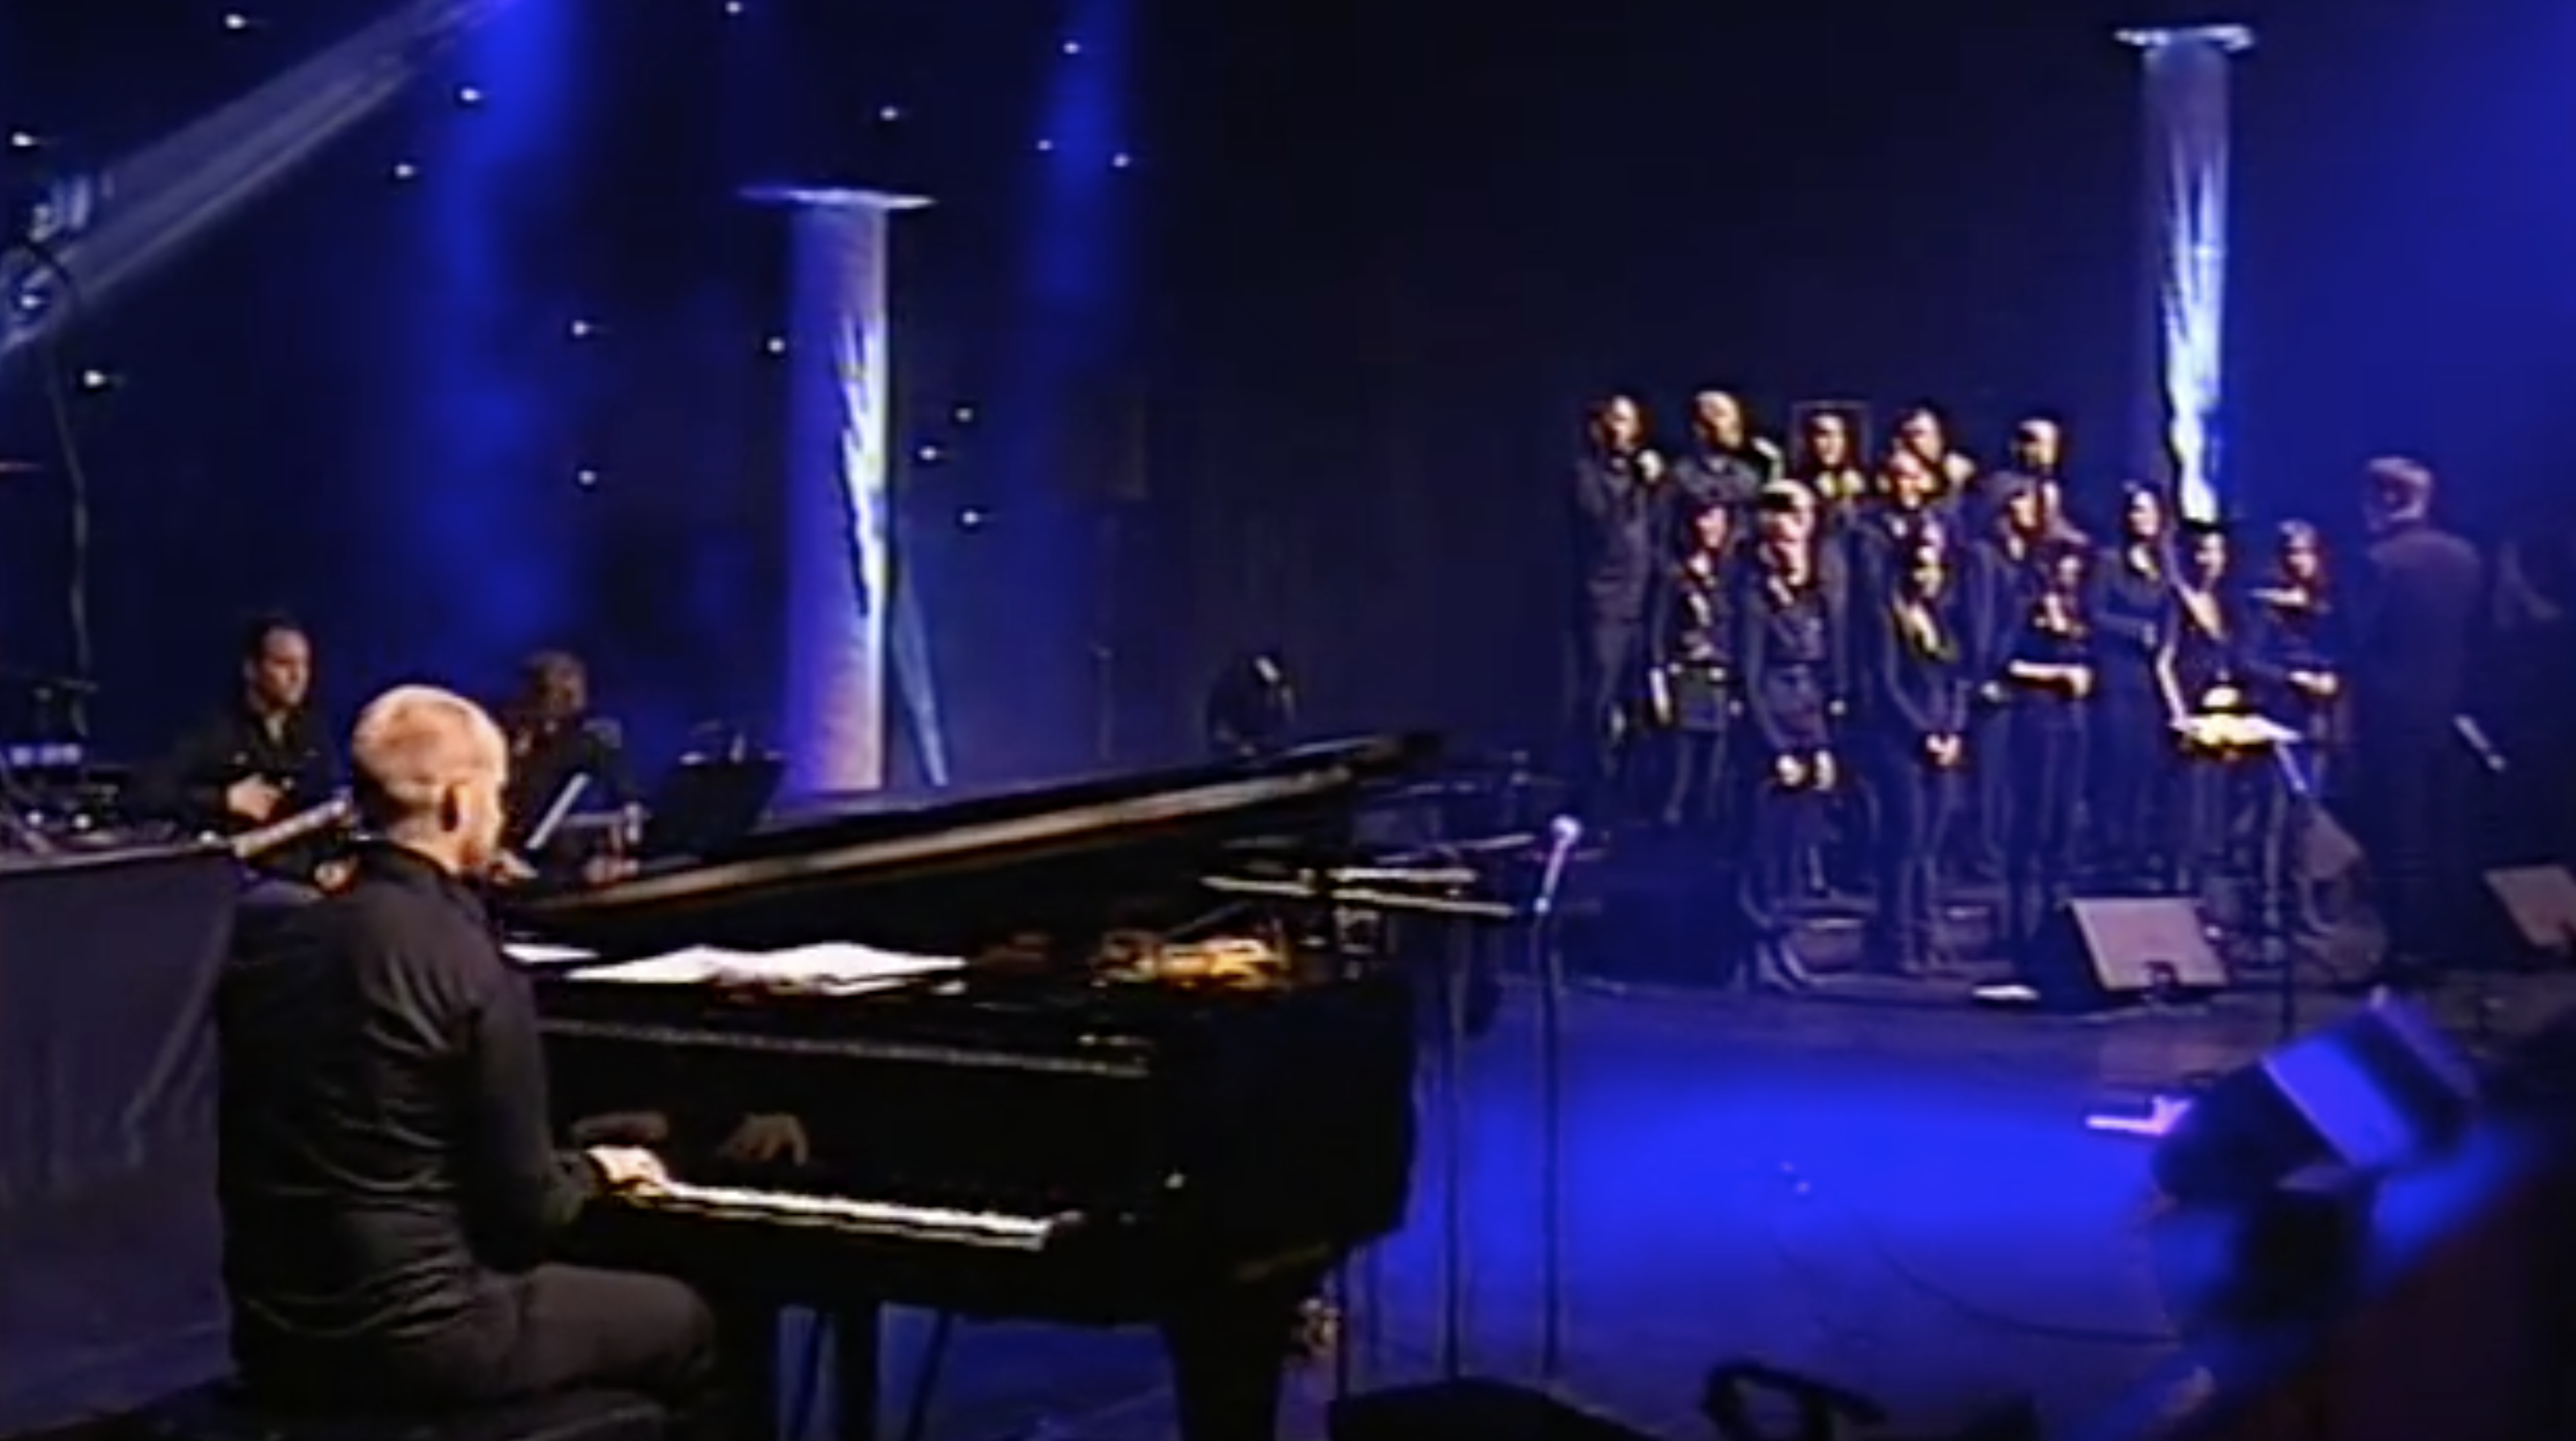 Oslo gospel choir this is the day part 2